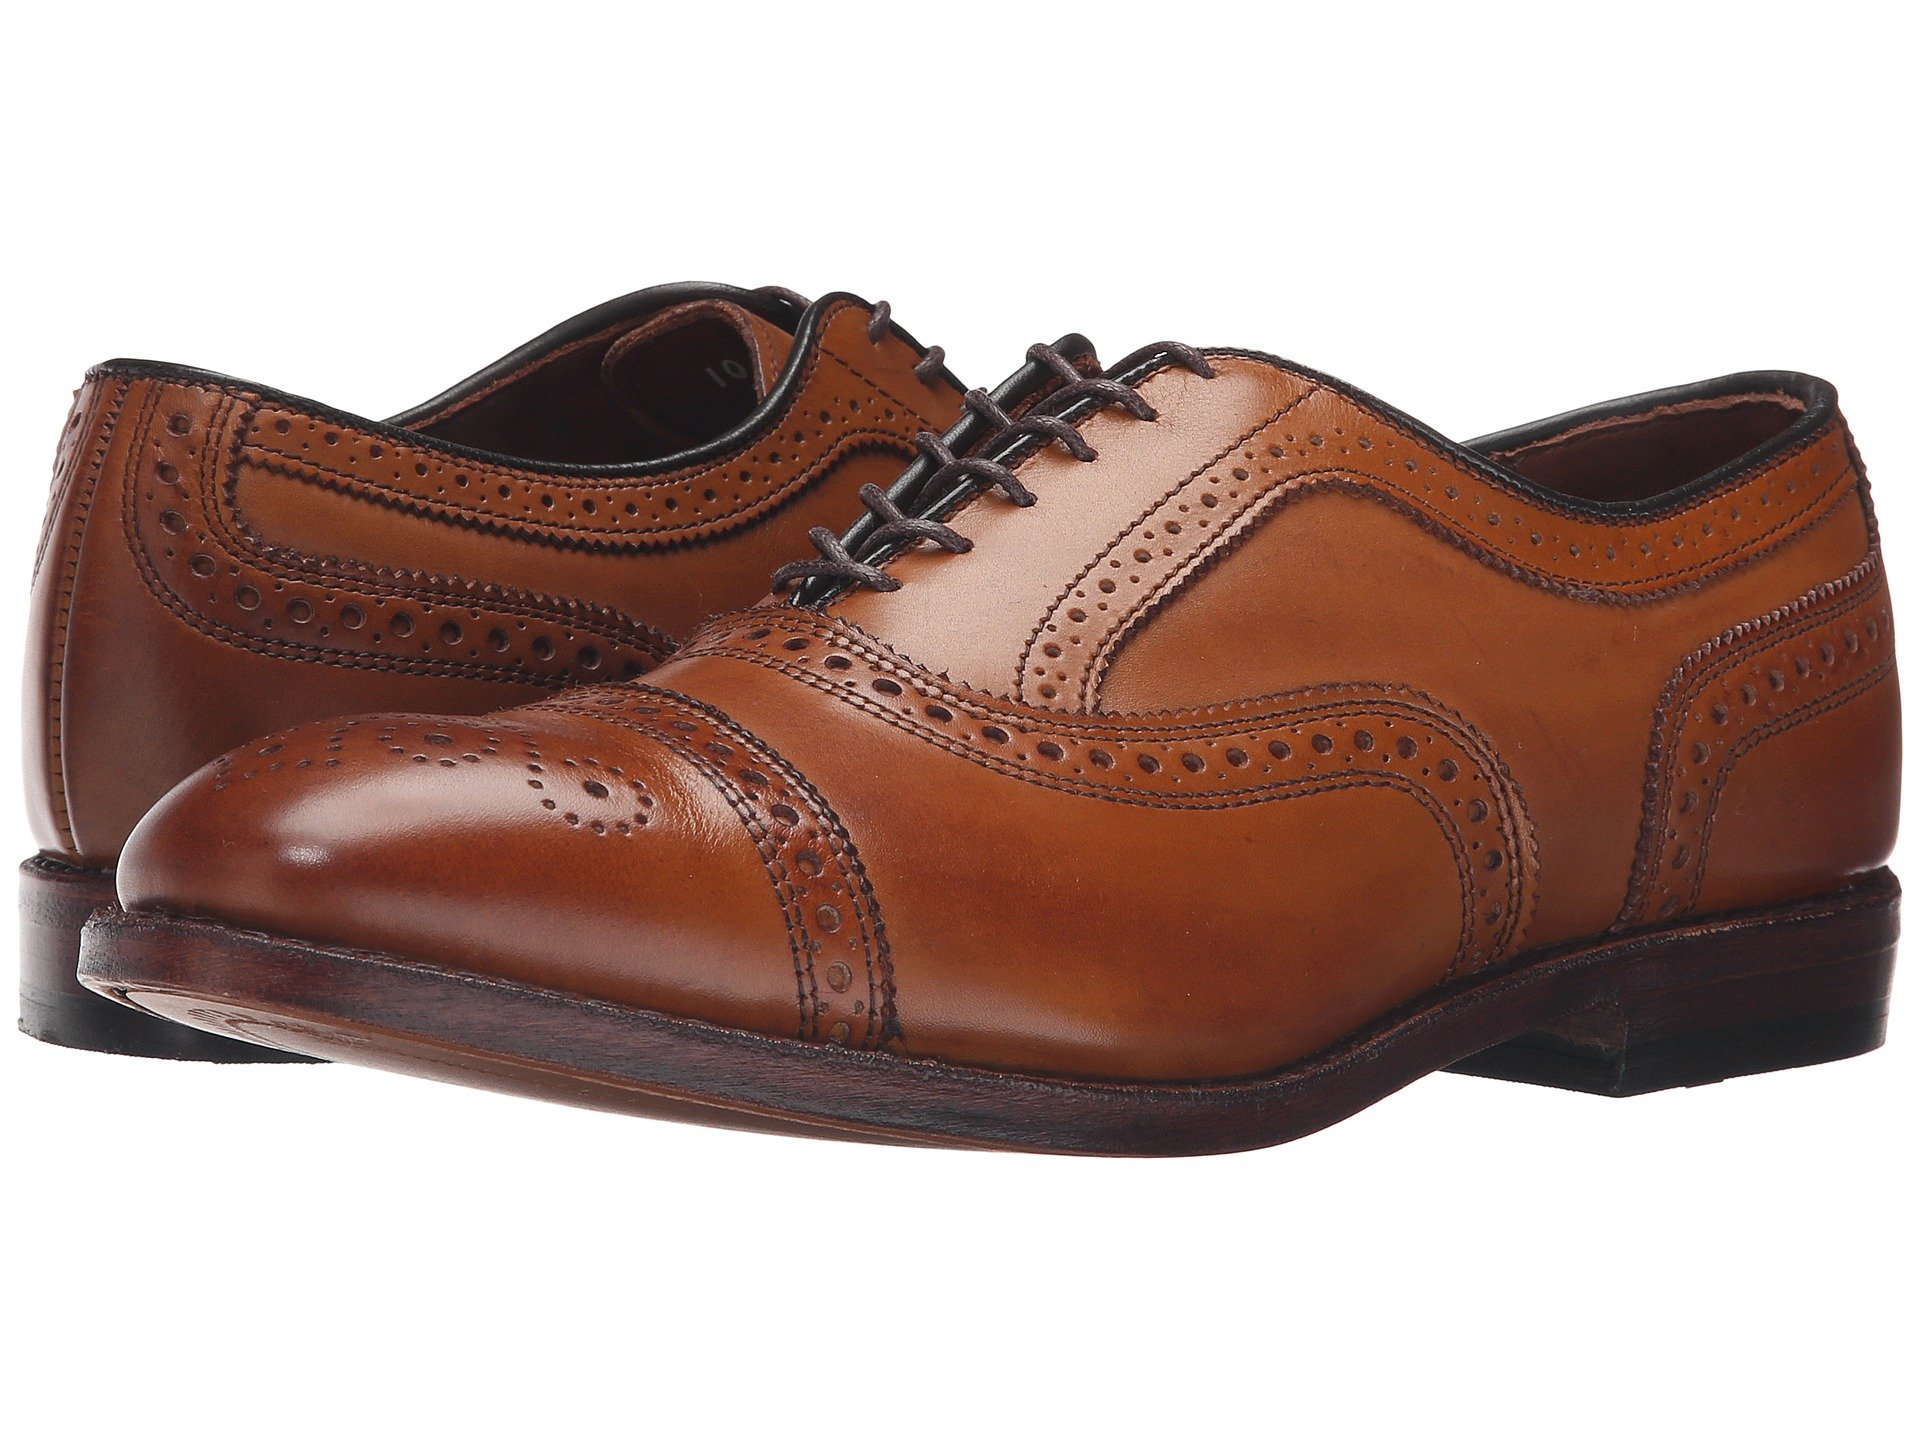 6123300c524 Men s Brown Dress Shoes  The Ultimate Guide